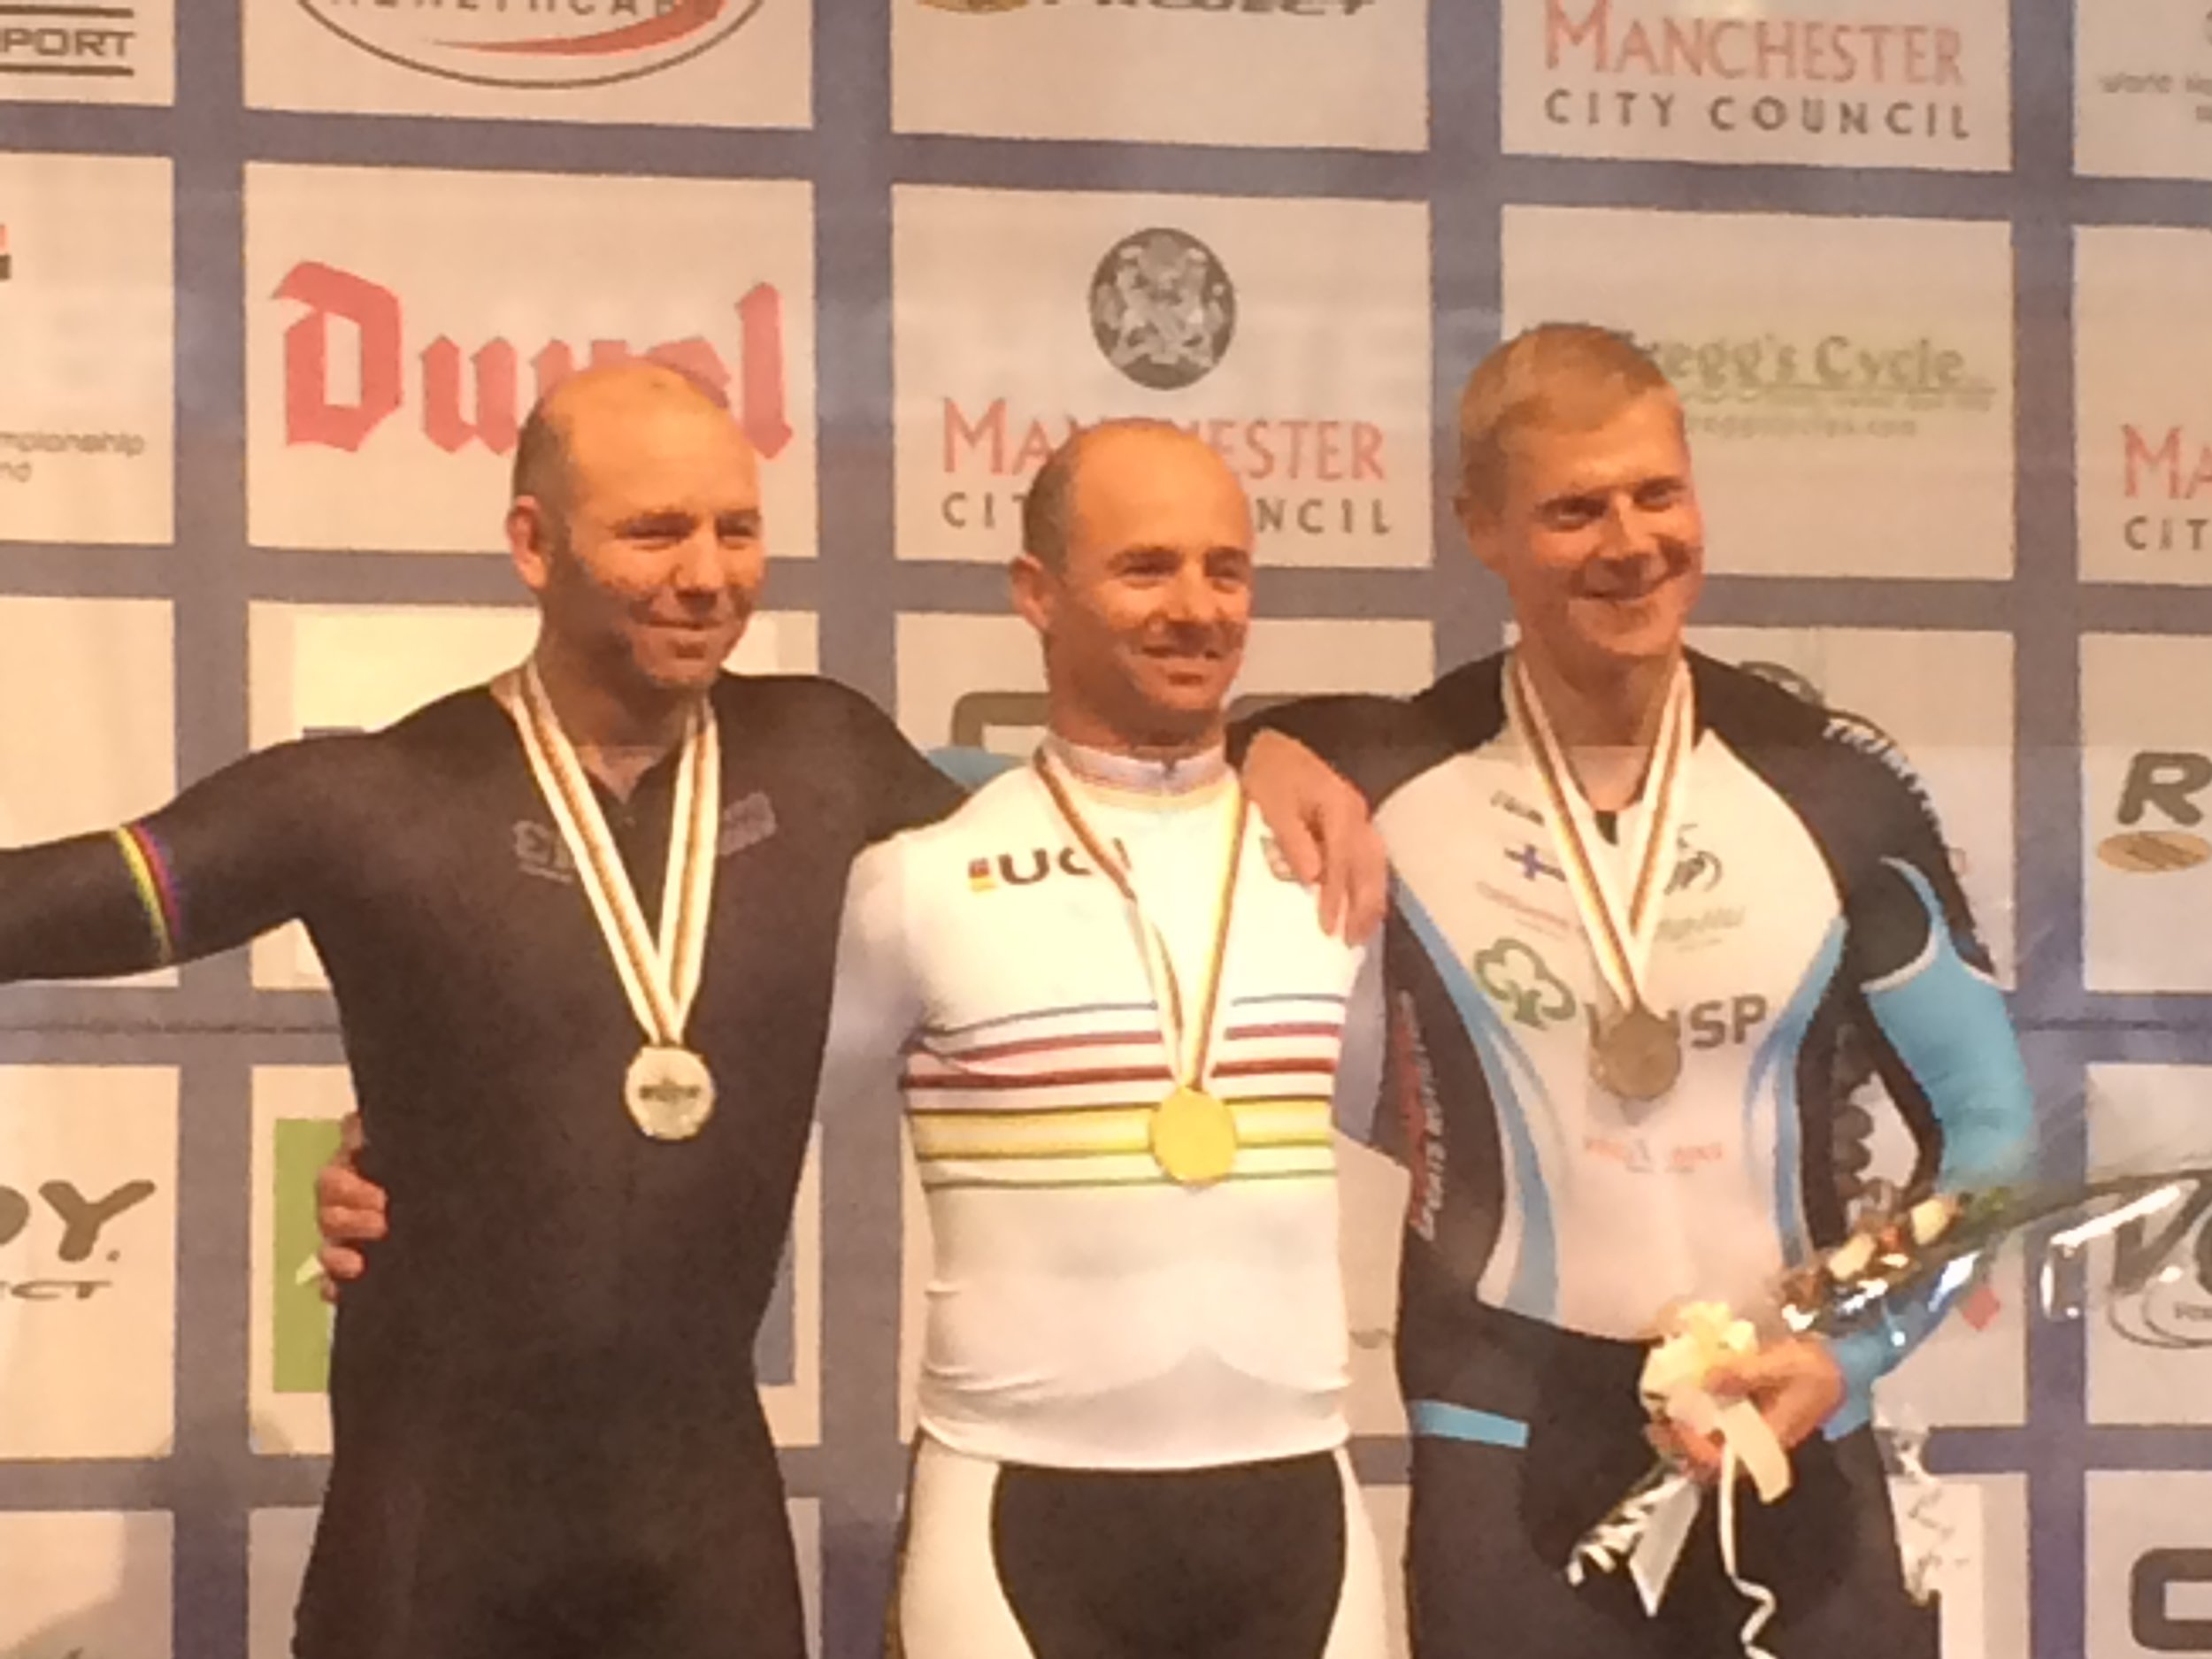 Manchester Masters World Track Championships October 16 - Mike Smith World Champion